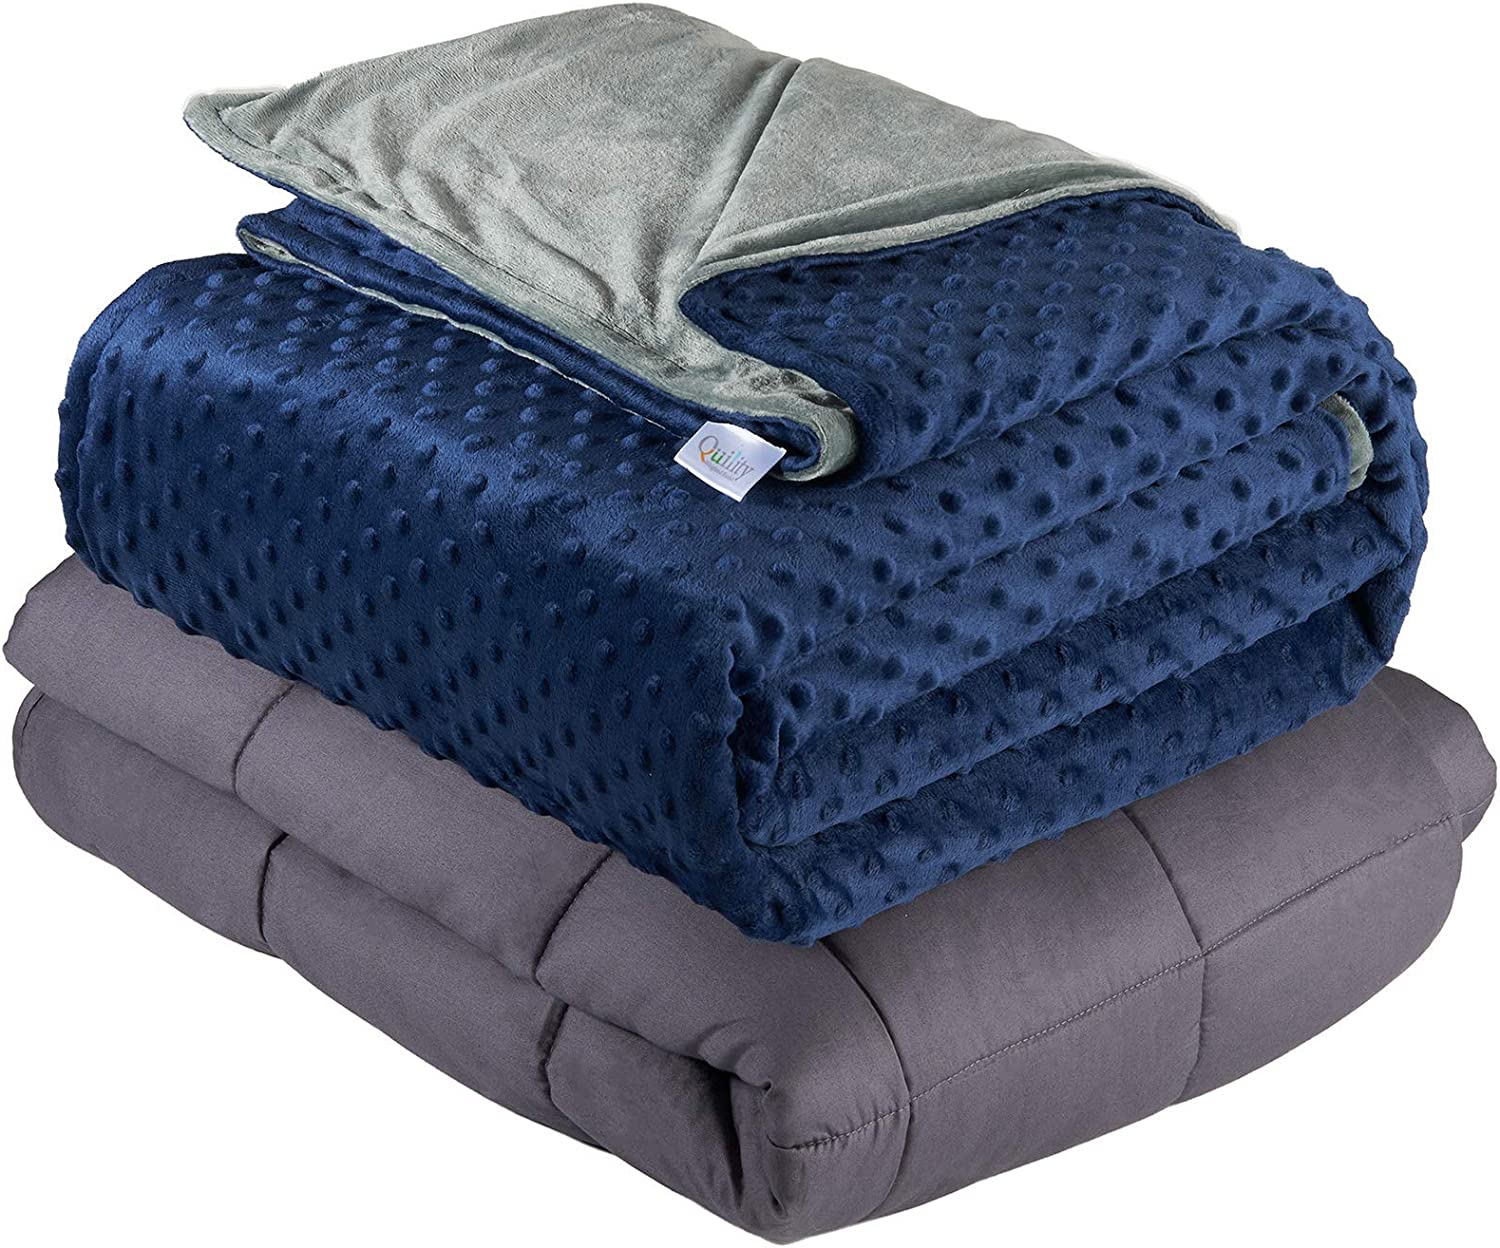 Weighted blanket for better sleep. Good gifts for self care. The best self care gifts on Amazon. Top self care gifts 2020. self care gifts under $25. Wellness and self care gifts. At home self care gifts.